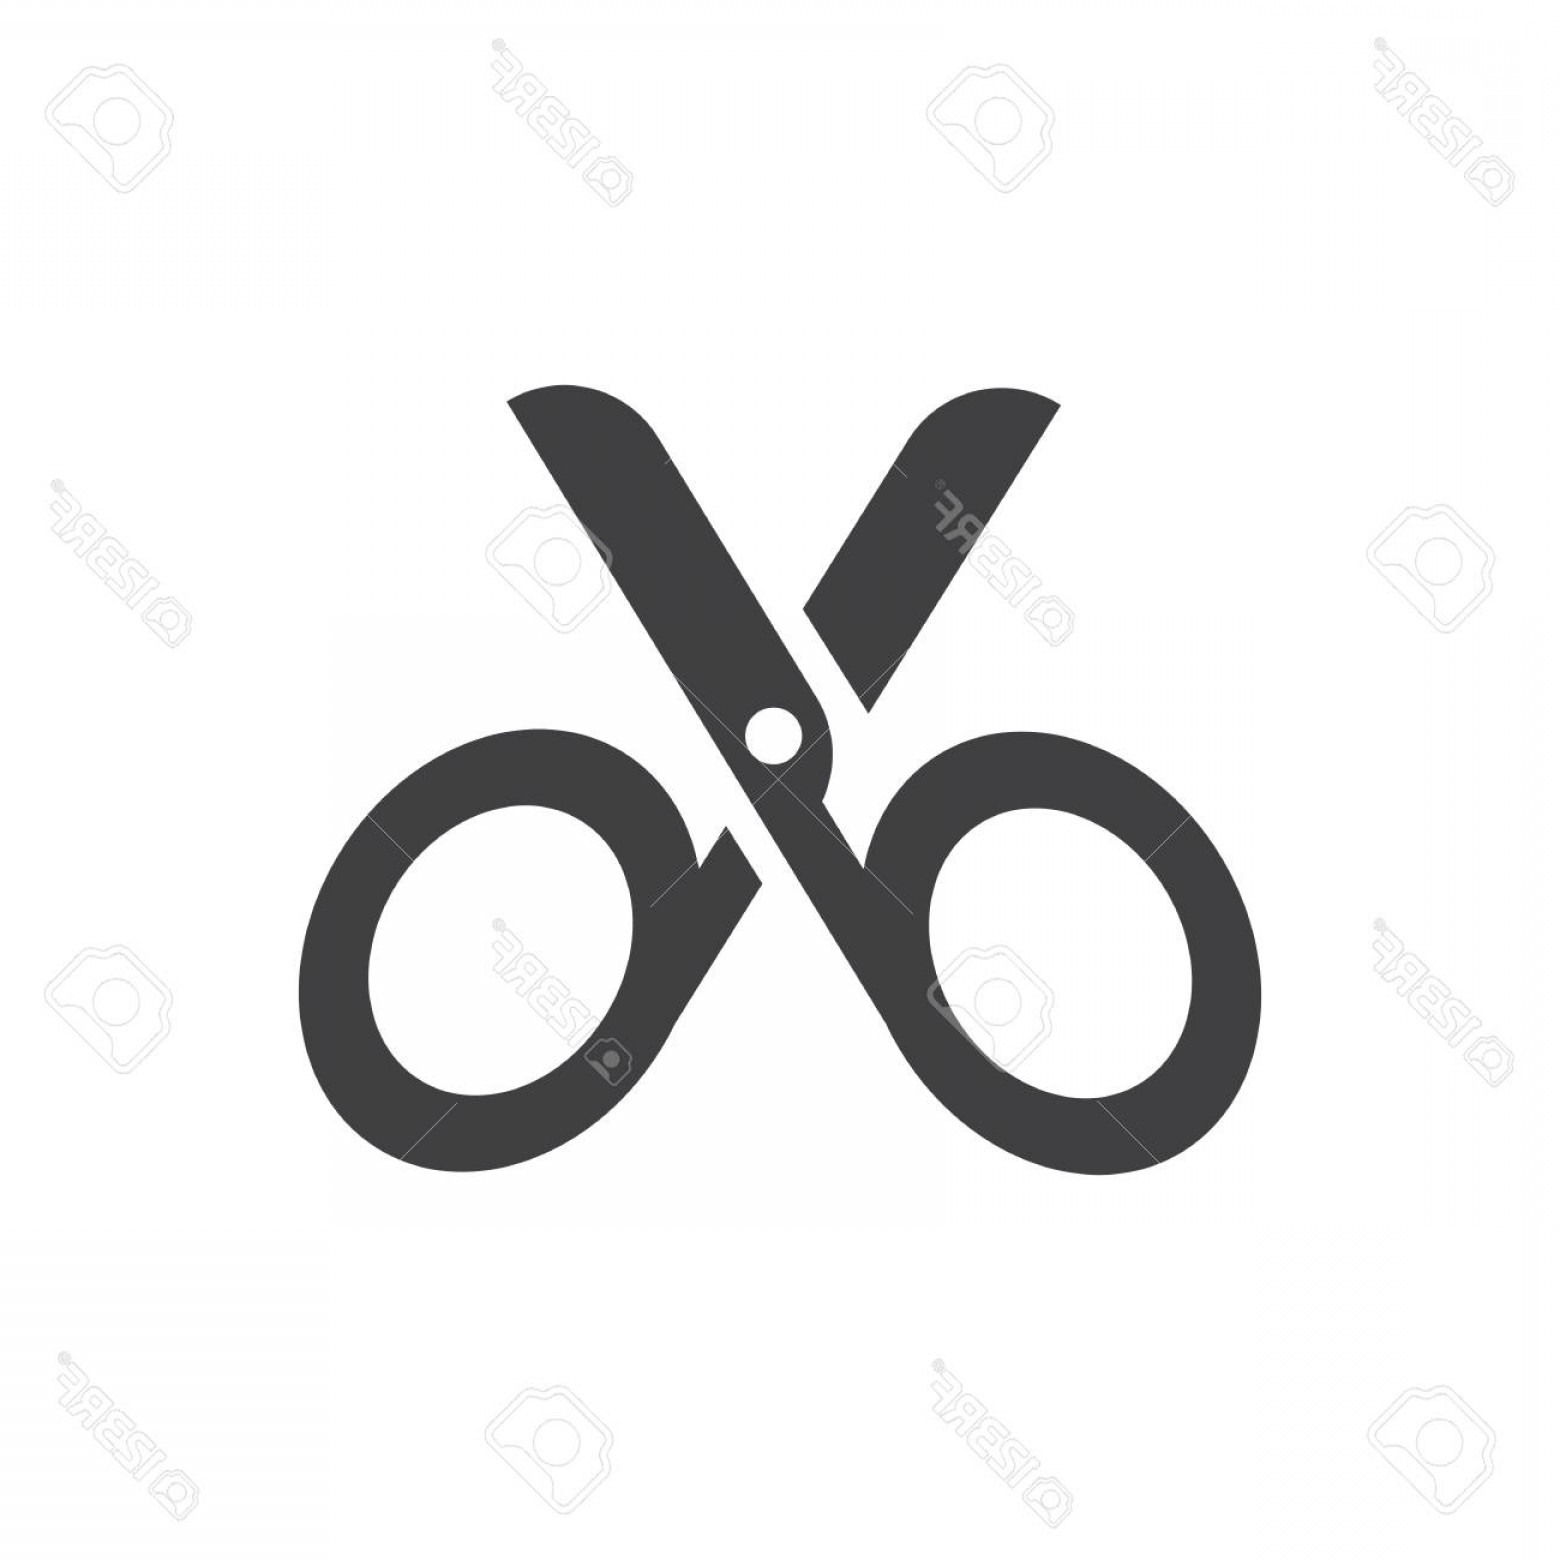 Cut Symbol Vector: Photostock Vector Cut Symbol Icon Vector